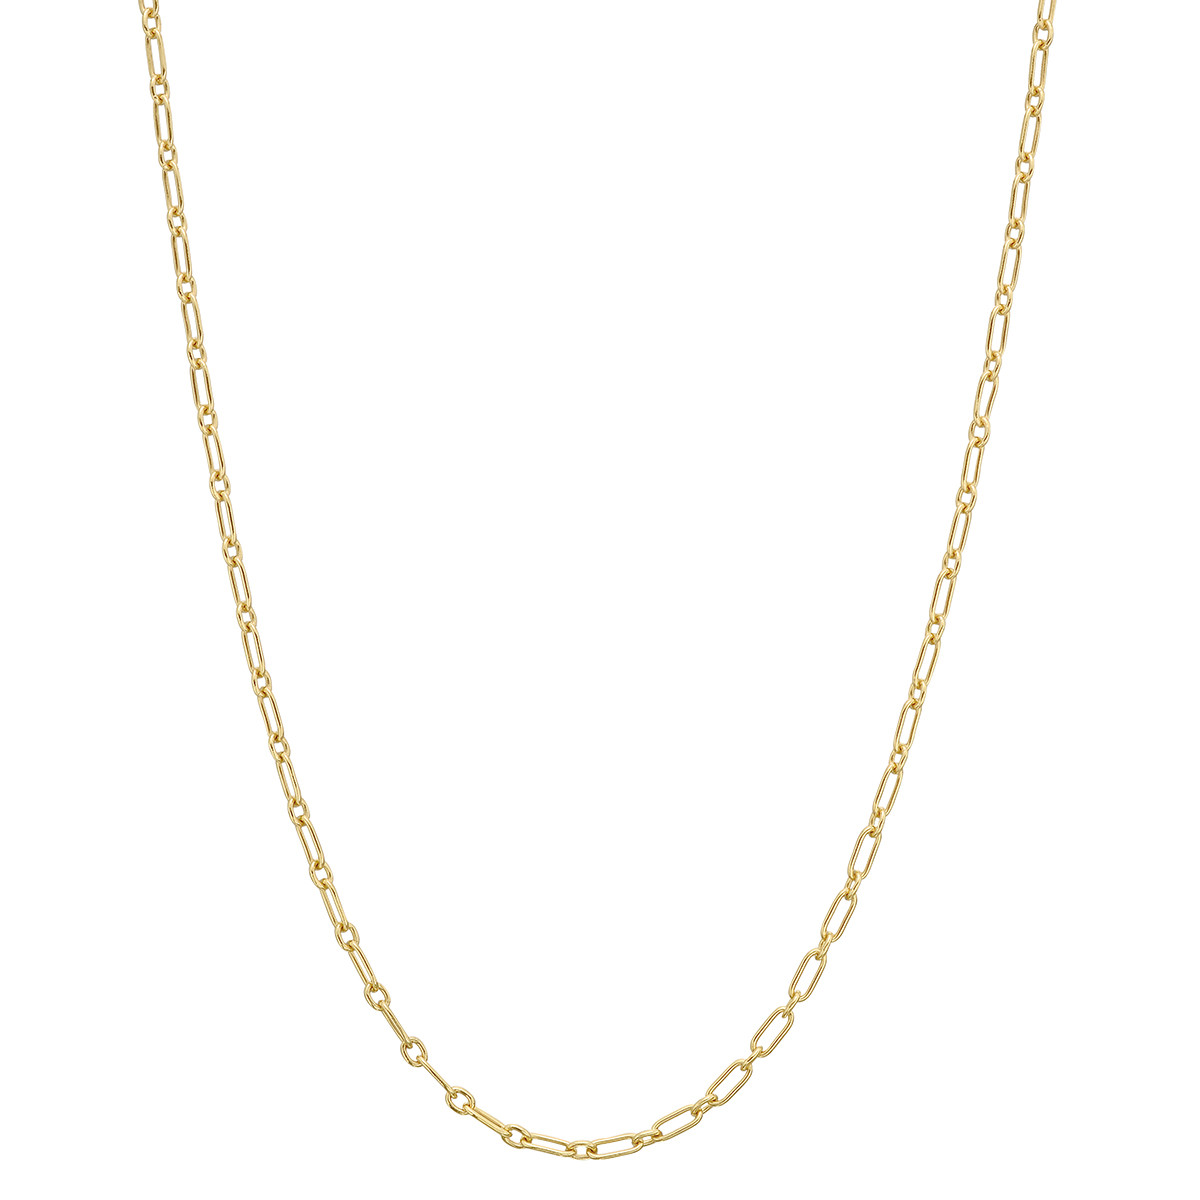 "14k Yellow Gold Flat Oval Link Chain Necklace (24"")"